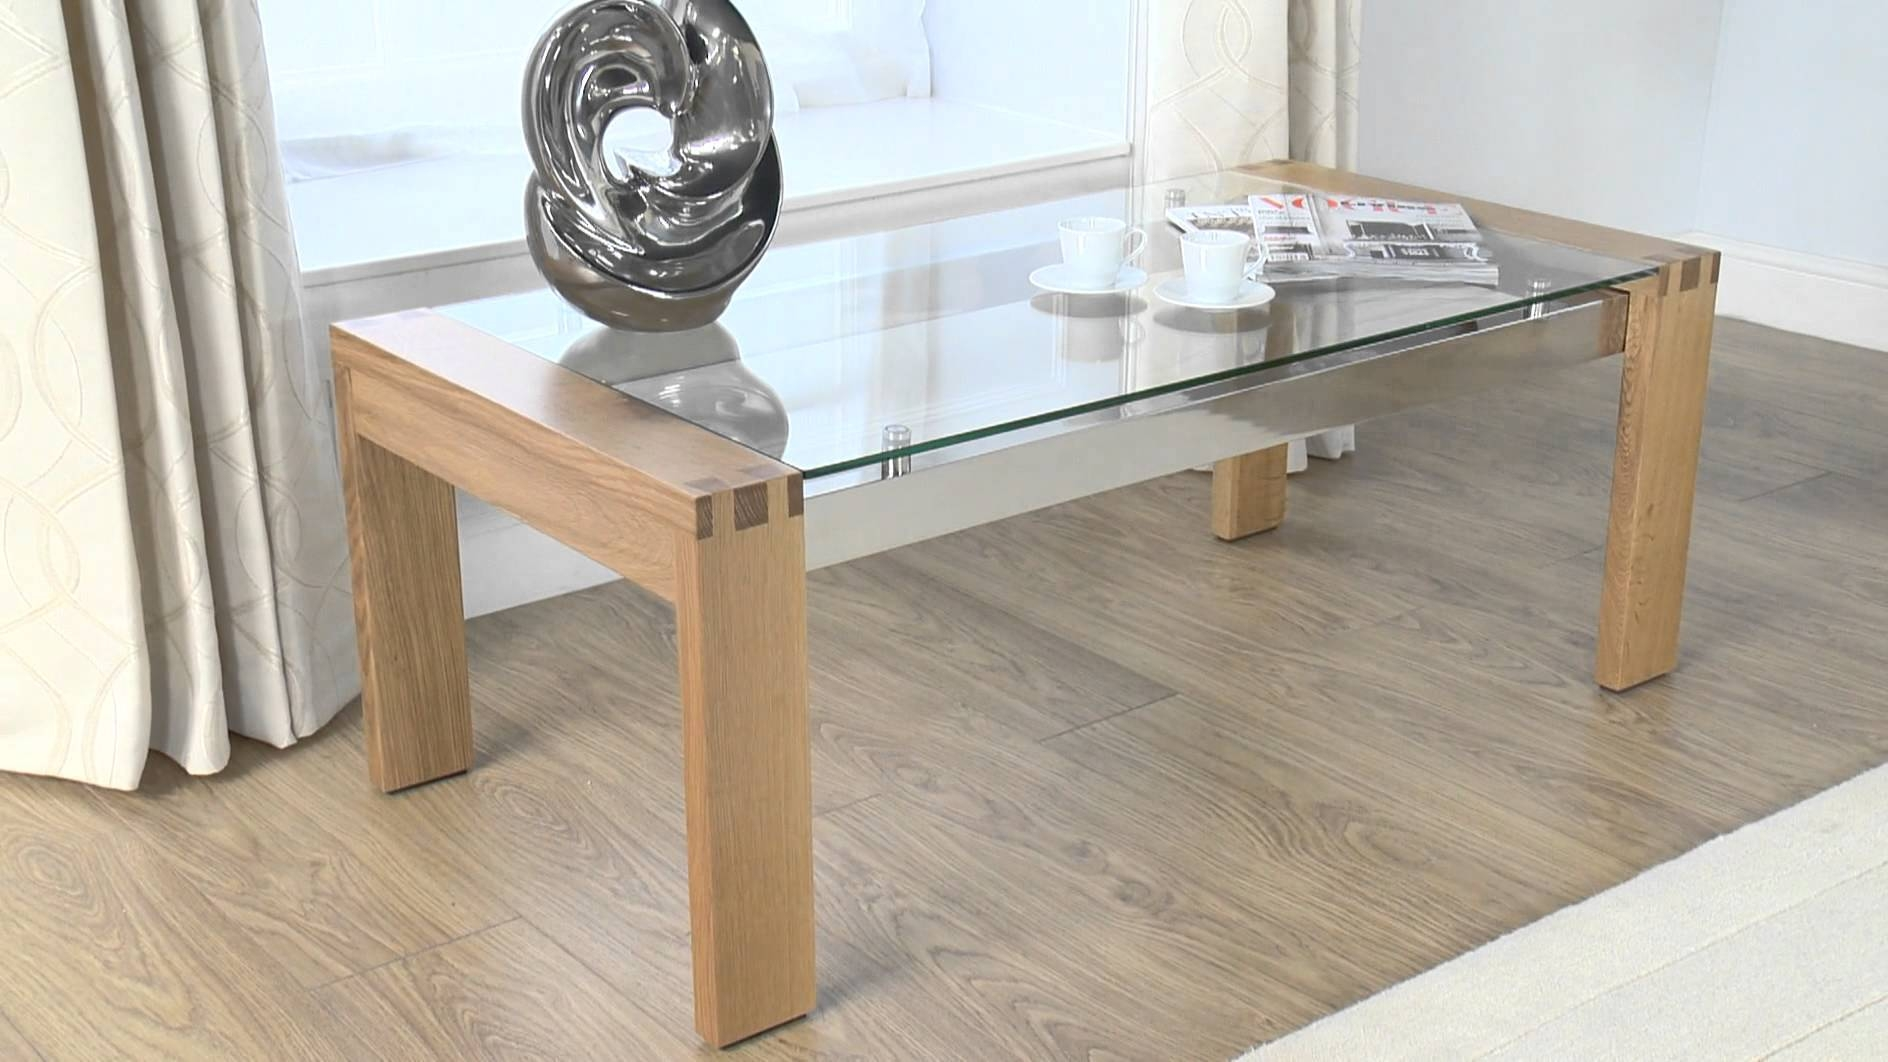 Furniture : Modern Coffee Table With Four Wooden Stools Complete within Glass And Wood Coffee Tables (Image 8 of 15)